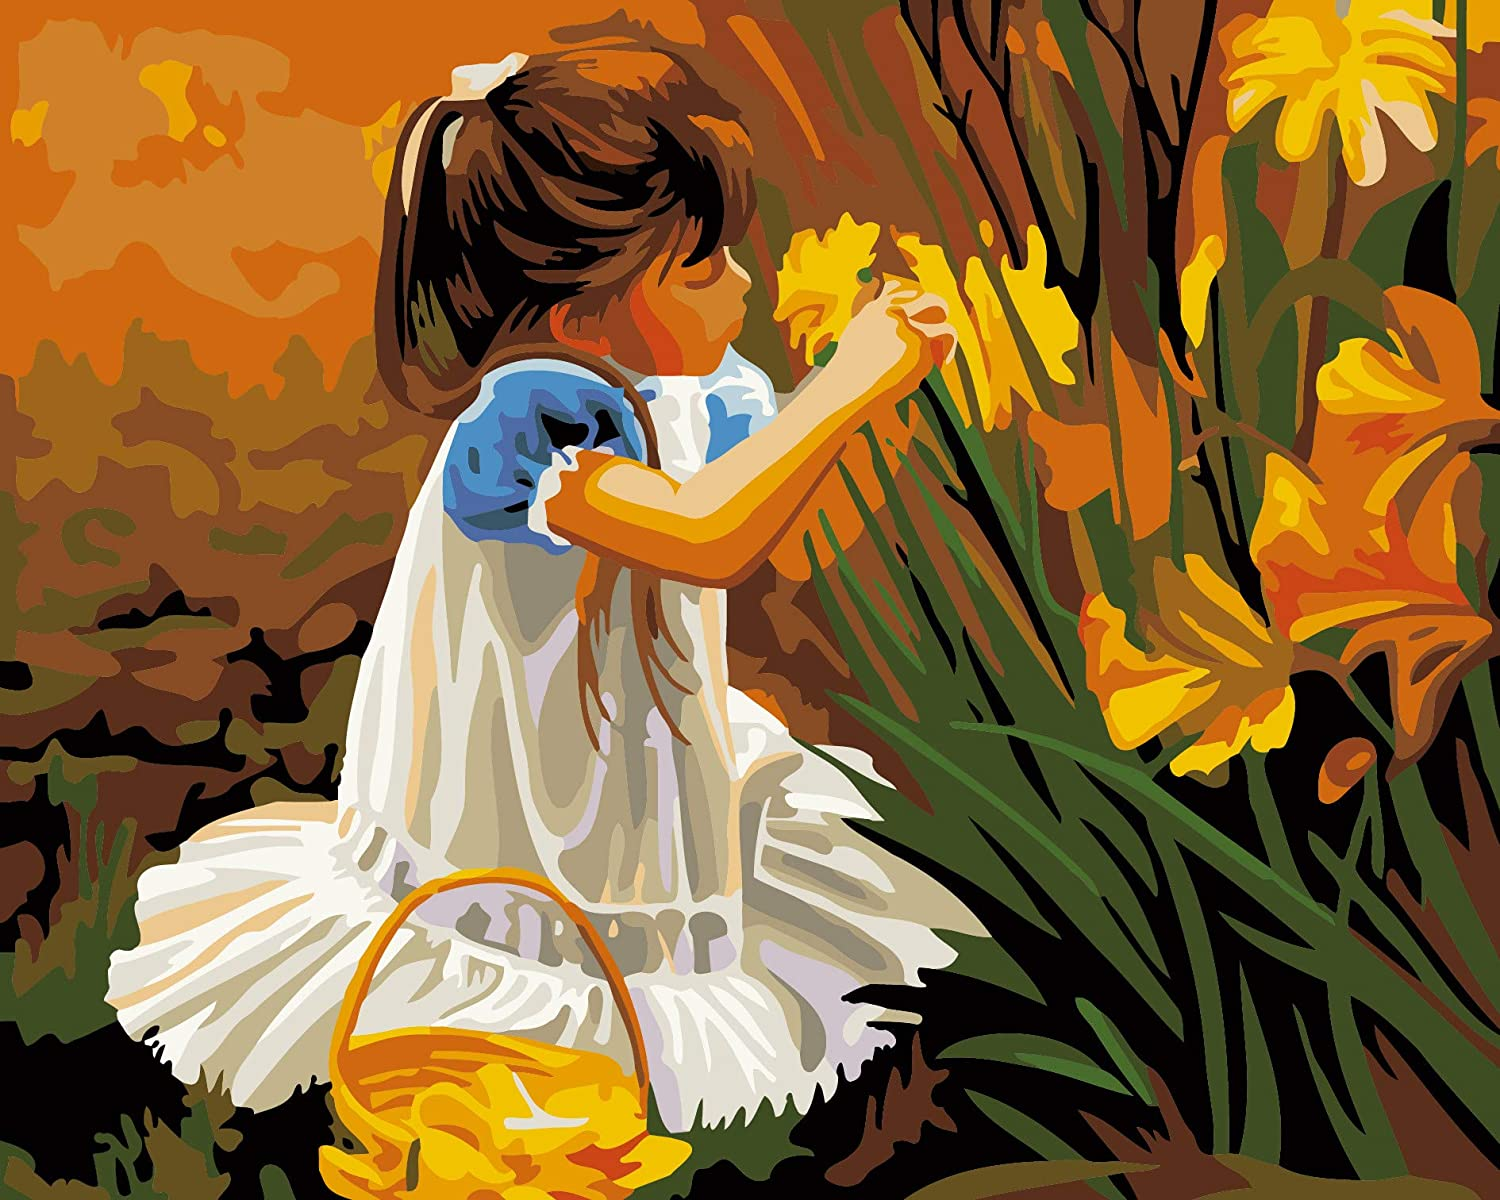 Painting by Number Kits DIY Painting Hand Painted Home Wall Decor Home Decorations Gifts for Kids Oil Painting Kit Lion Beginners Frameless 16 * 20 inch DIY Oil Painting Adults